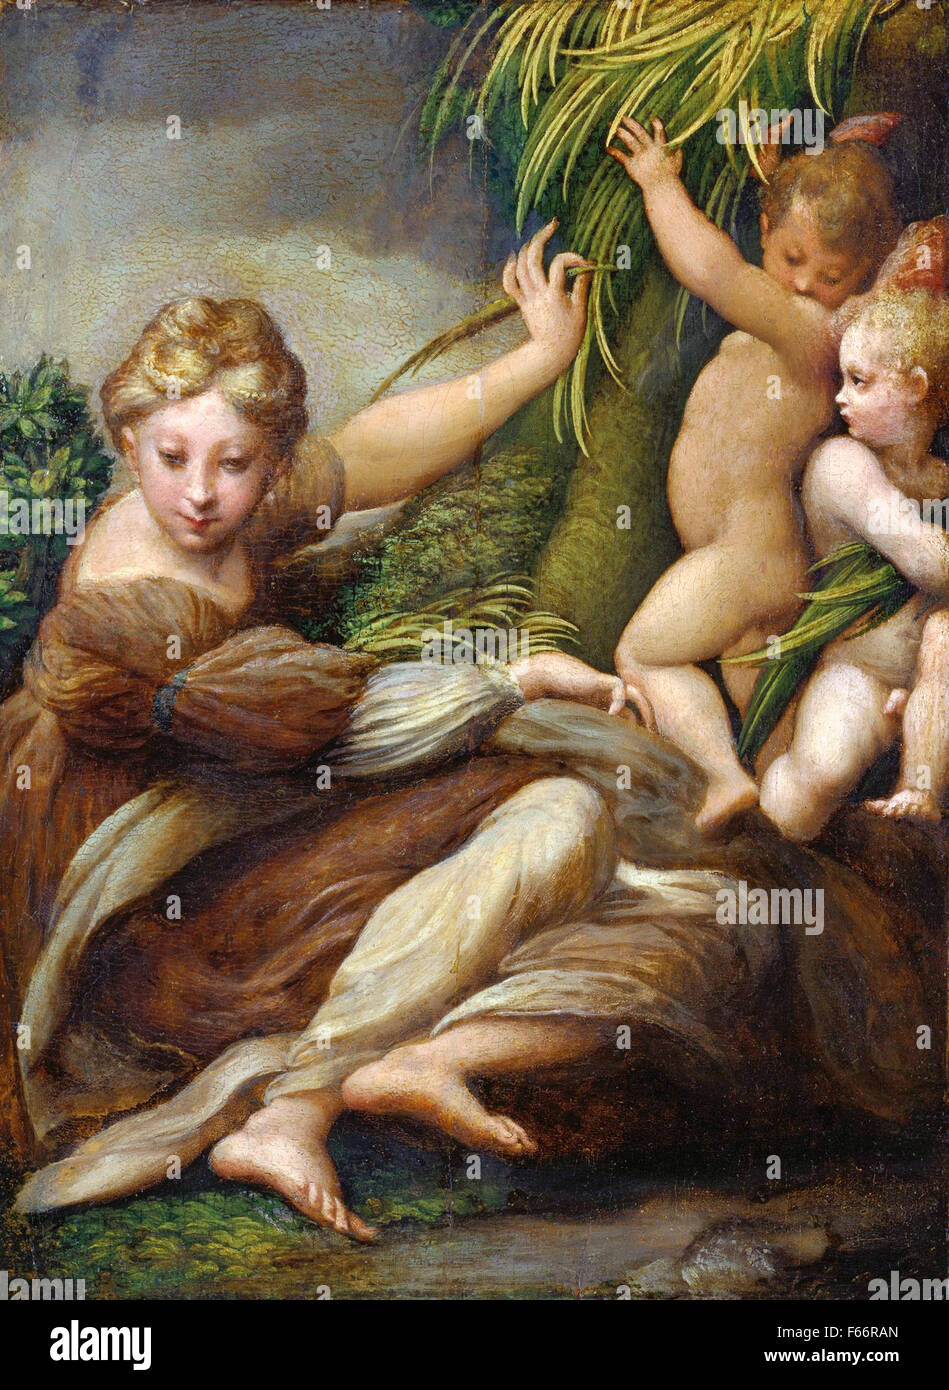 Parmigianino - Martyr with two Angels - Stock Image